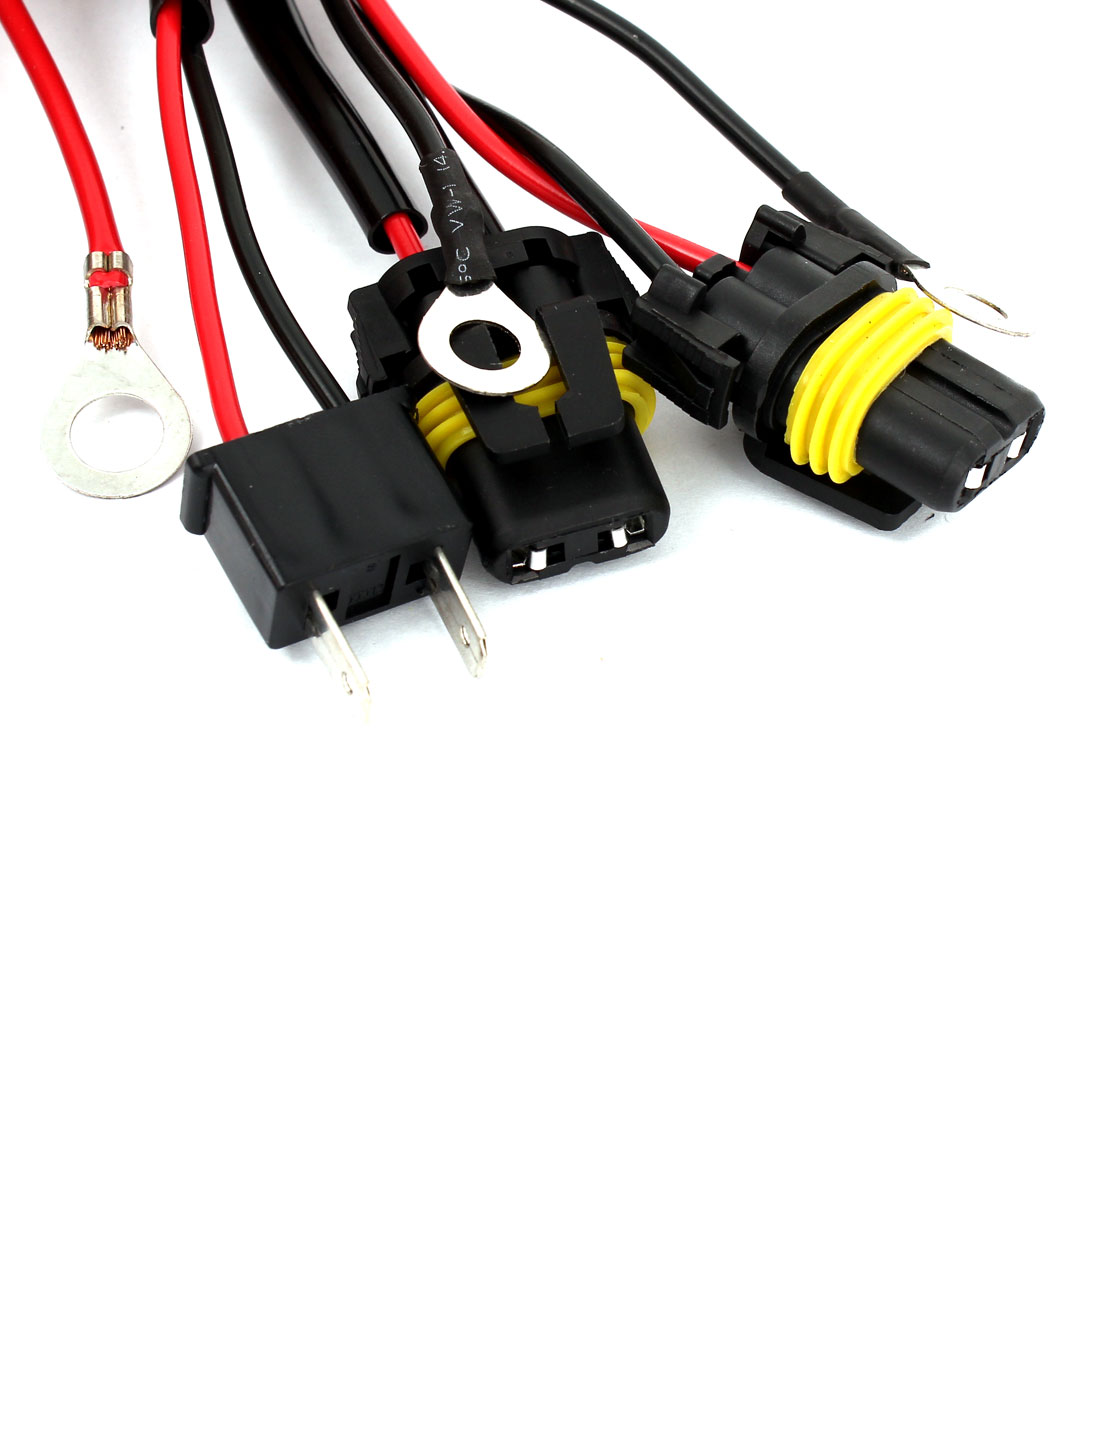 h7 xenon hid conversion kit relay wiring harness wire upgrade pack for car walmart canada [ 2000 x 2000 Pixel ]